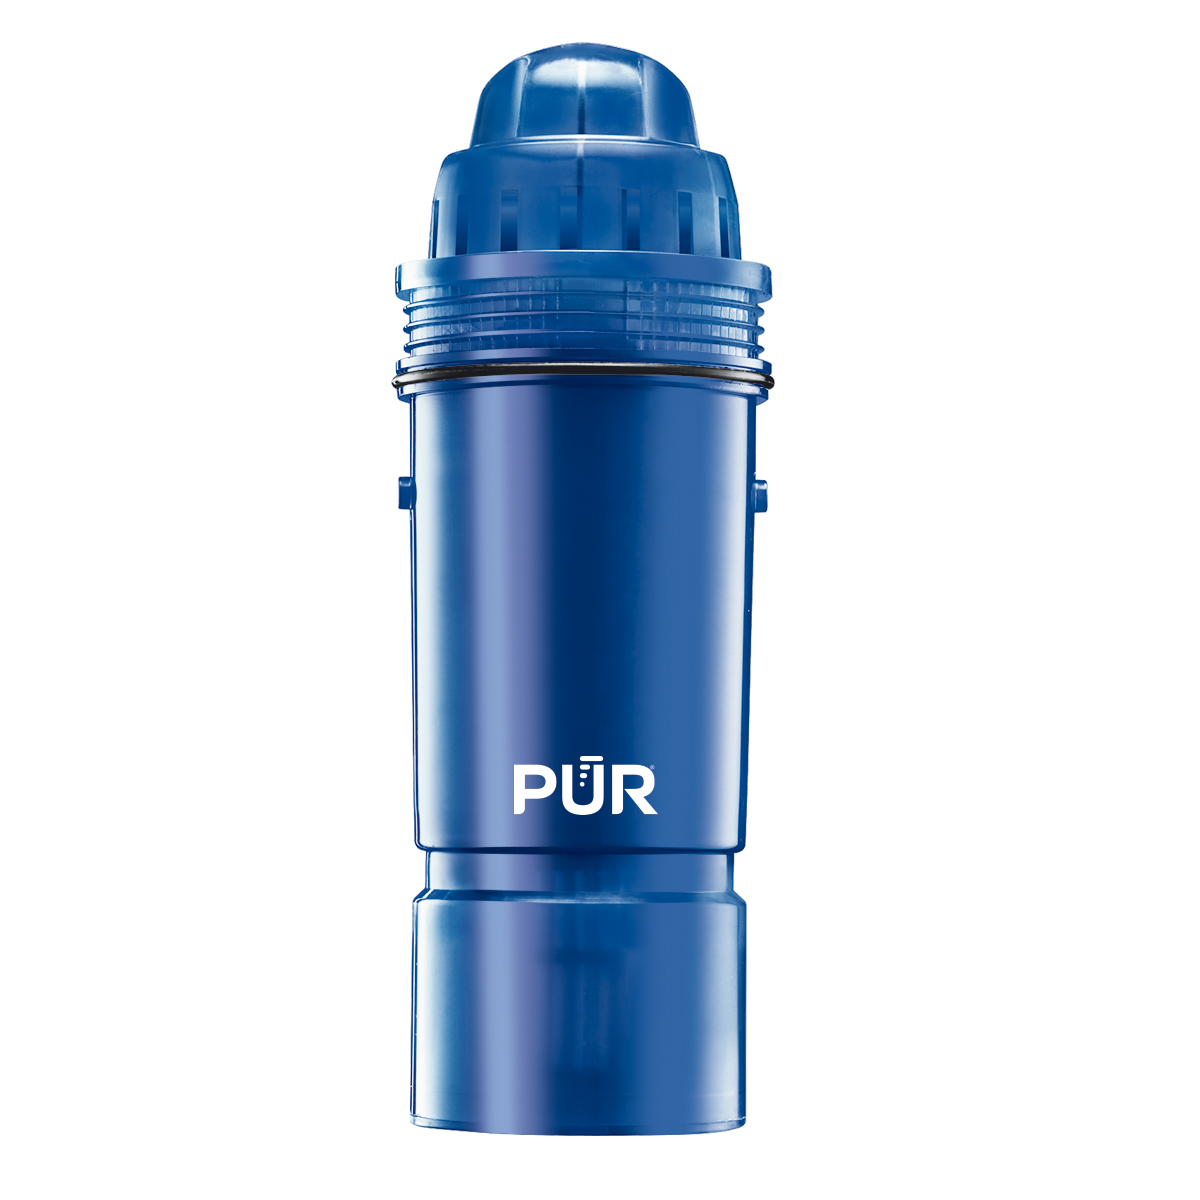 PUR Pitcher Replacement Water Filter, 1 Pack